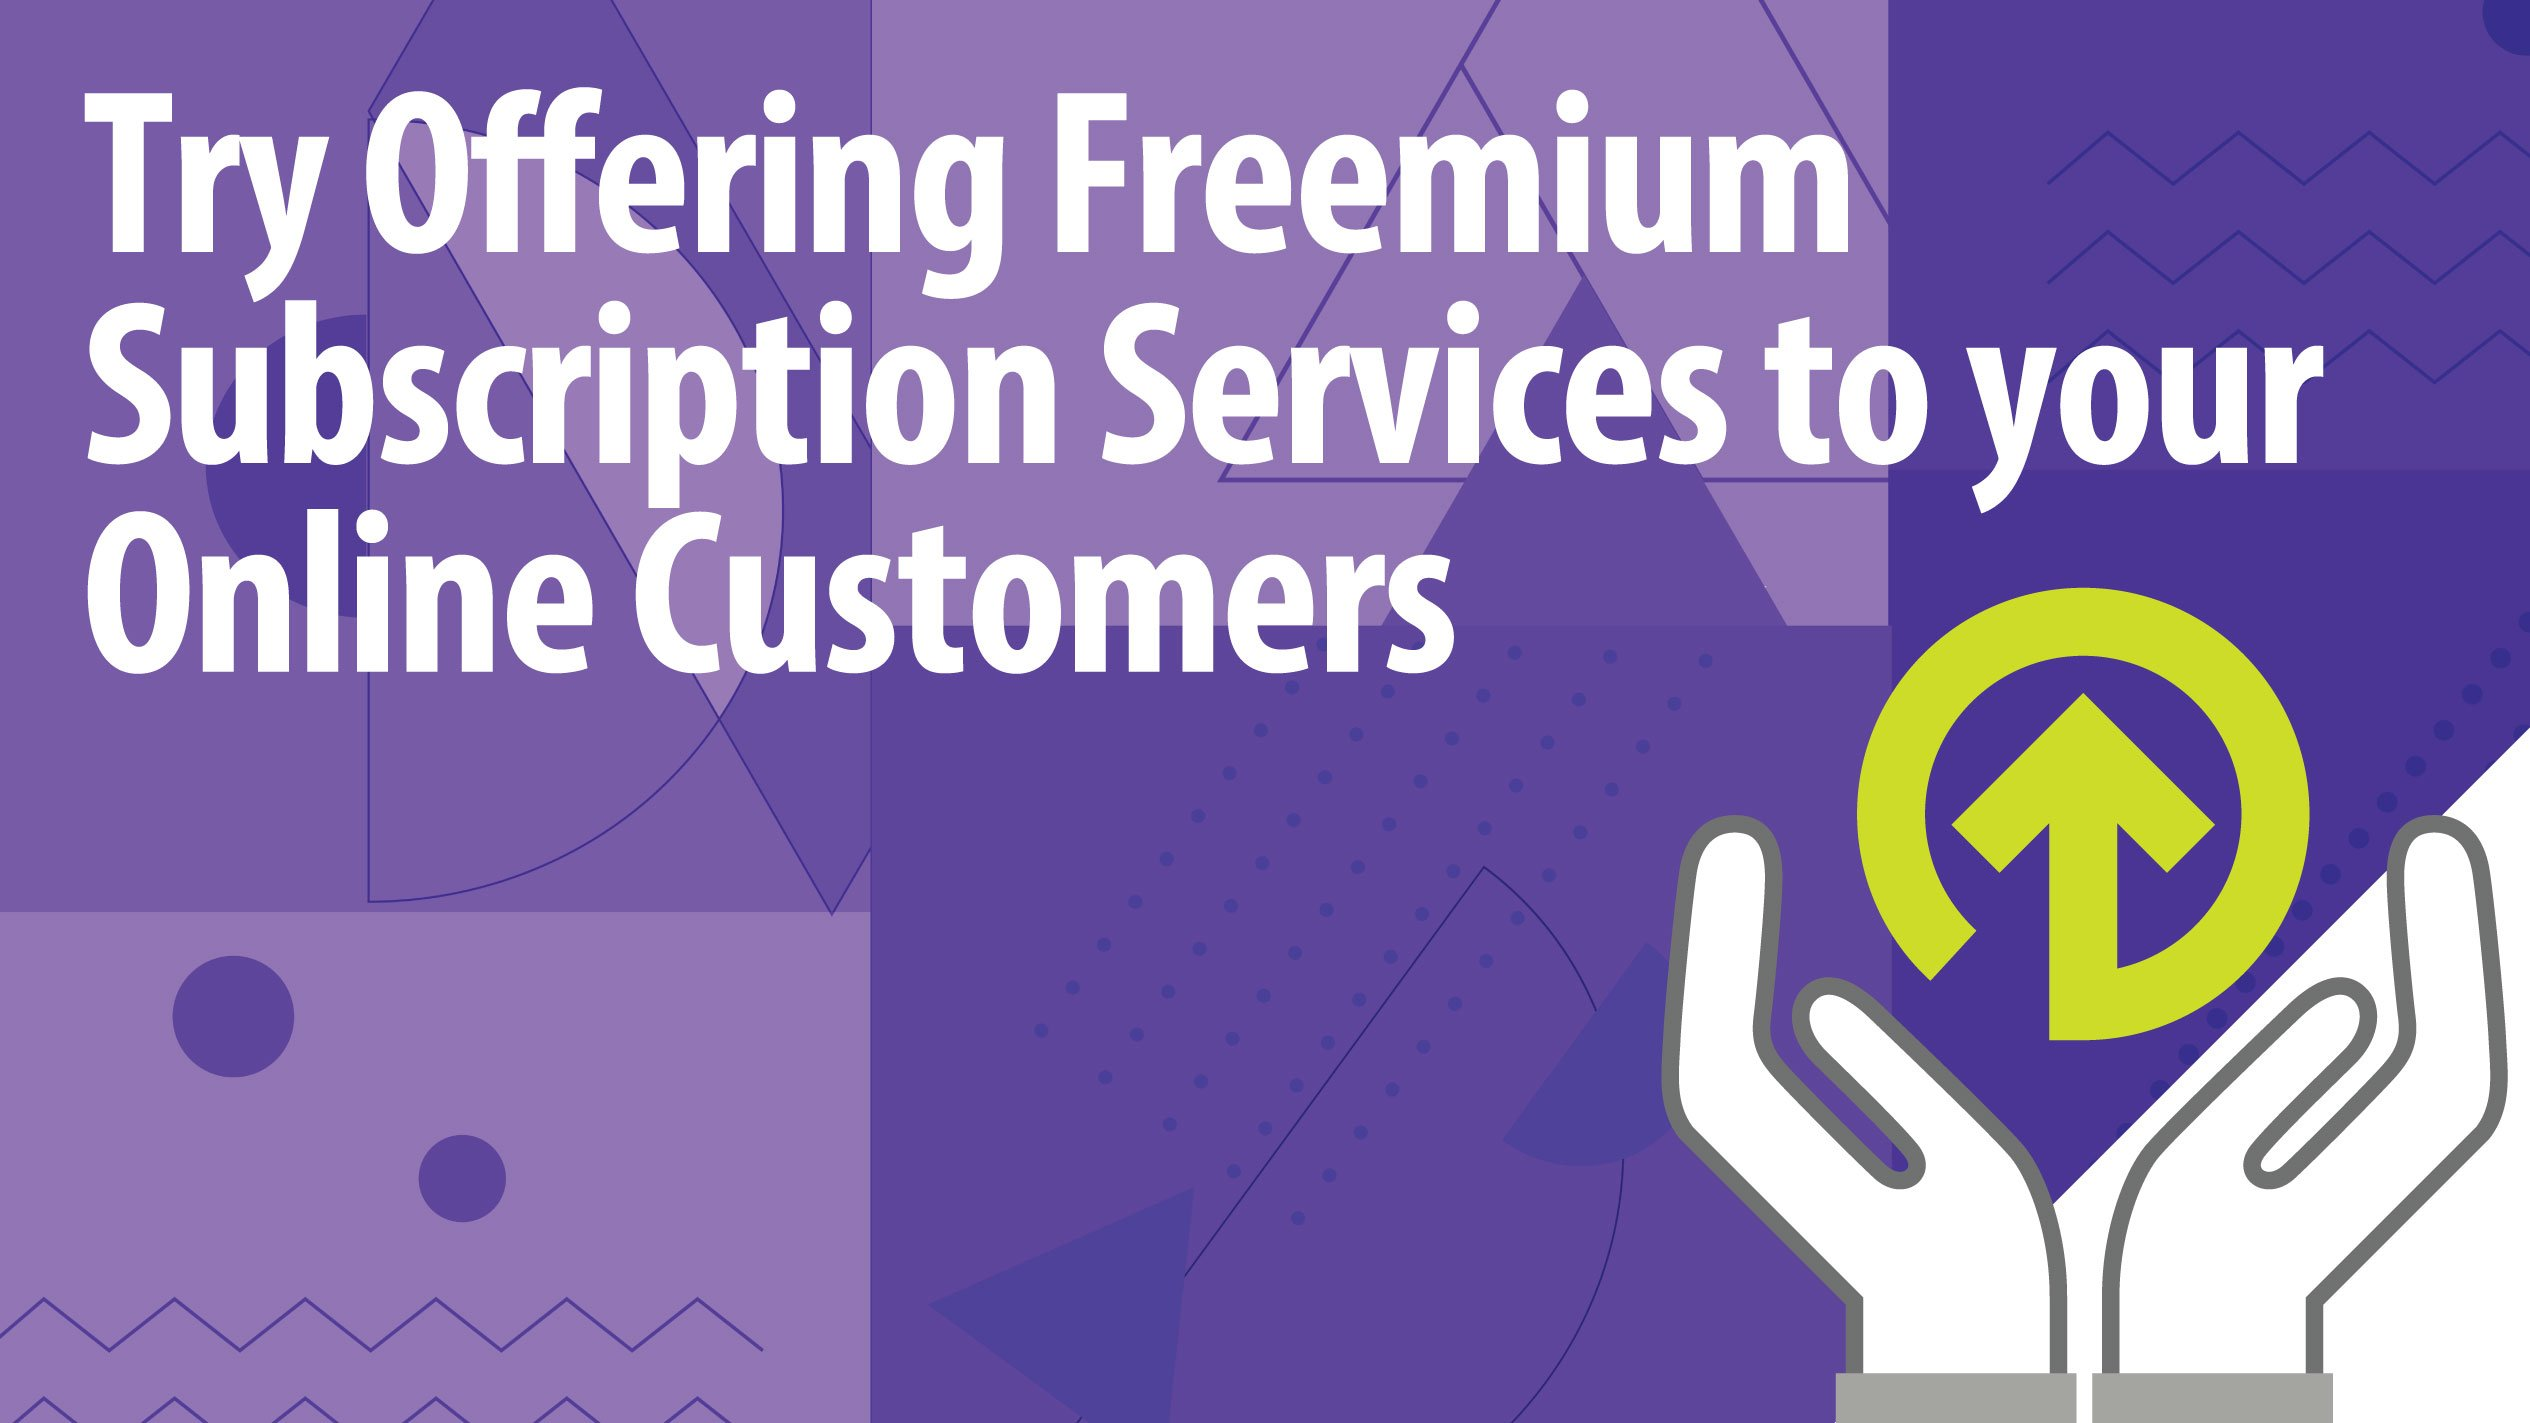 Try Offering Freemium Subscription Services to your Online Customers